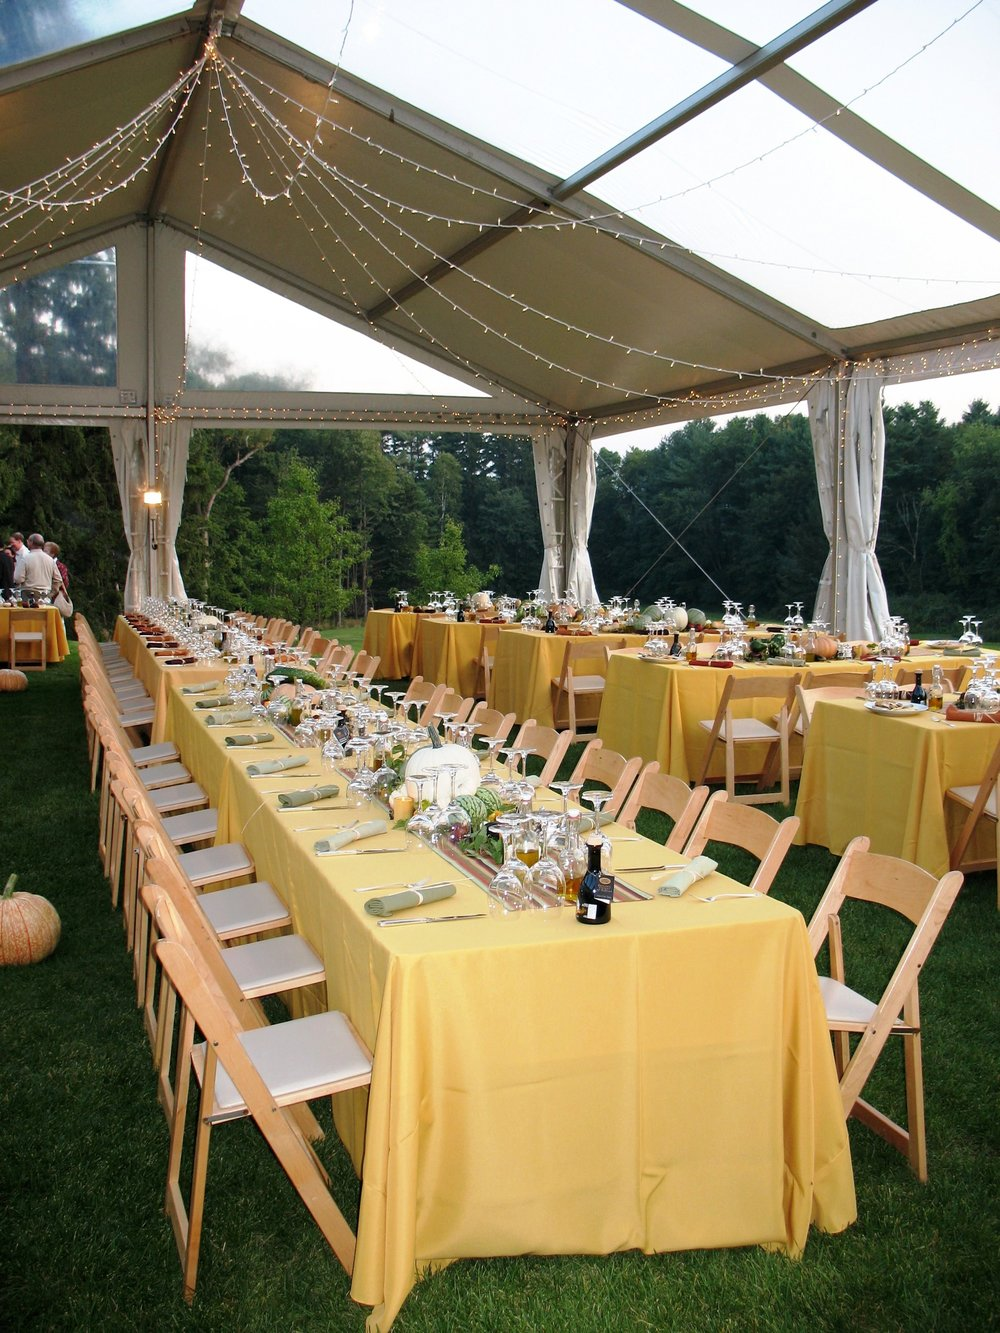 Wheatleigh structure tent clear.jpg